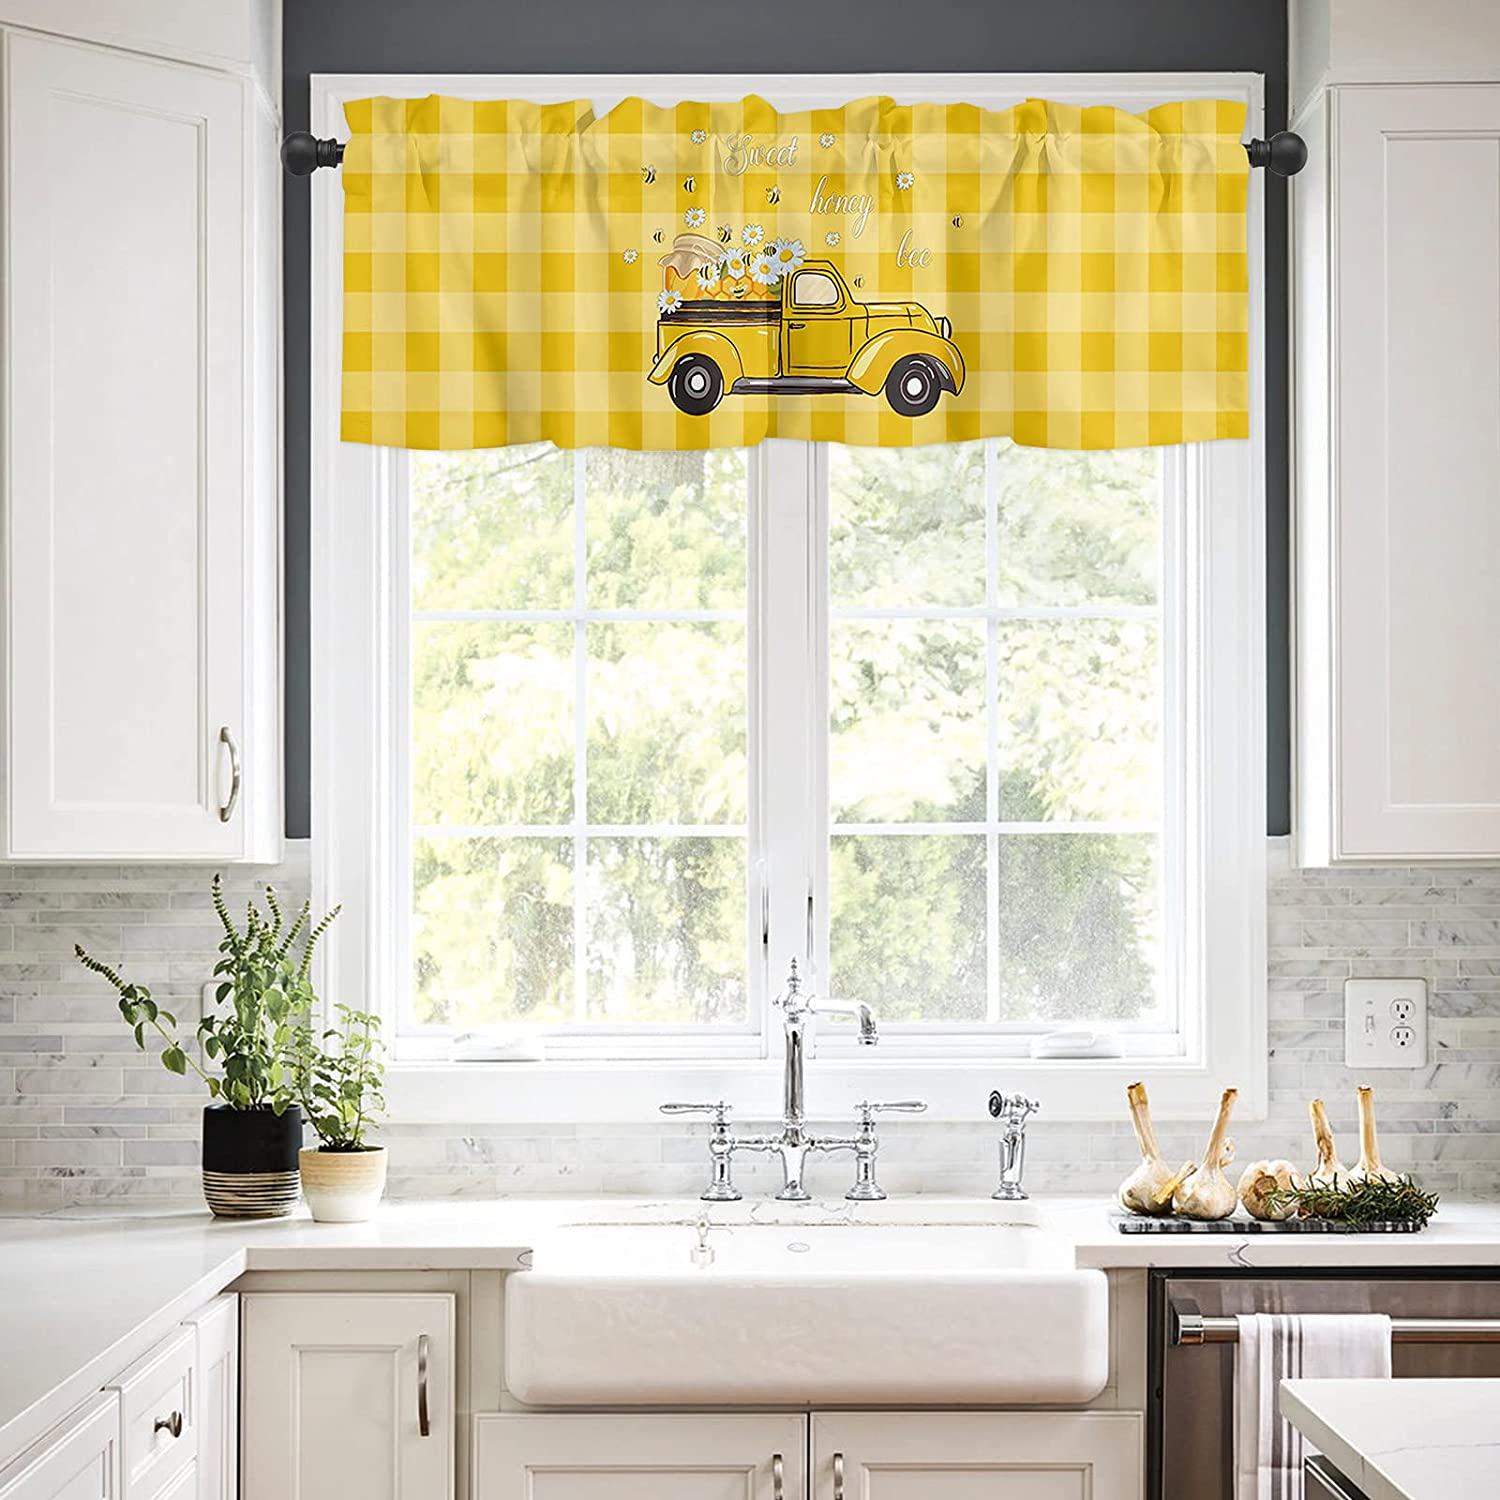 Rod Pocket Window Valances Curtains Bee Happy Ranking TOP6 Kitchen for Import Sweet